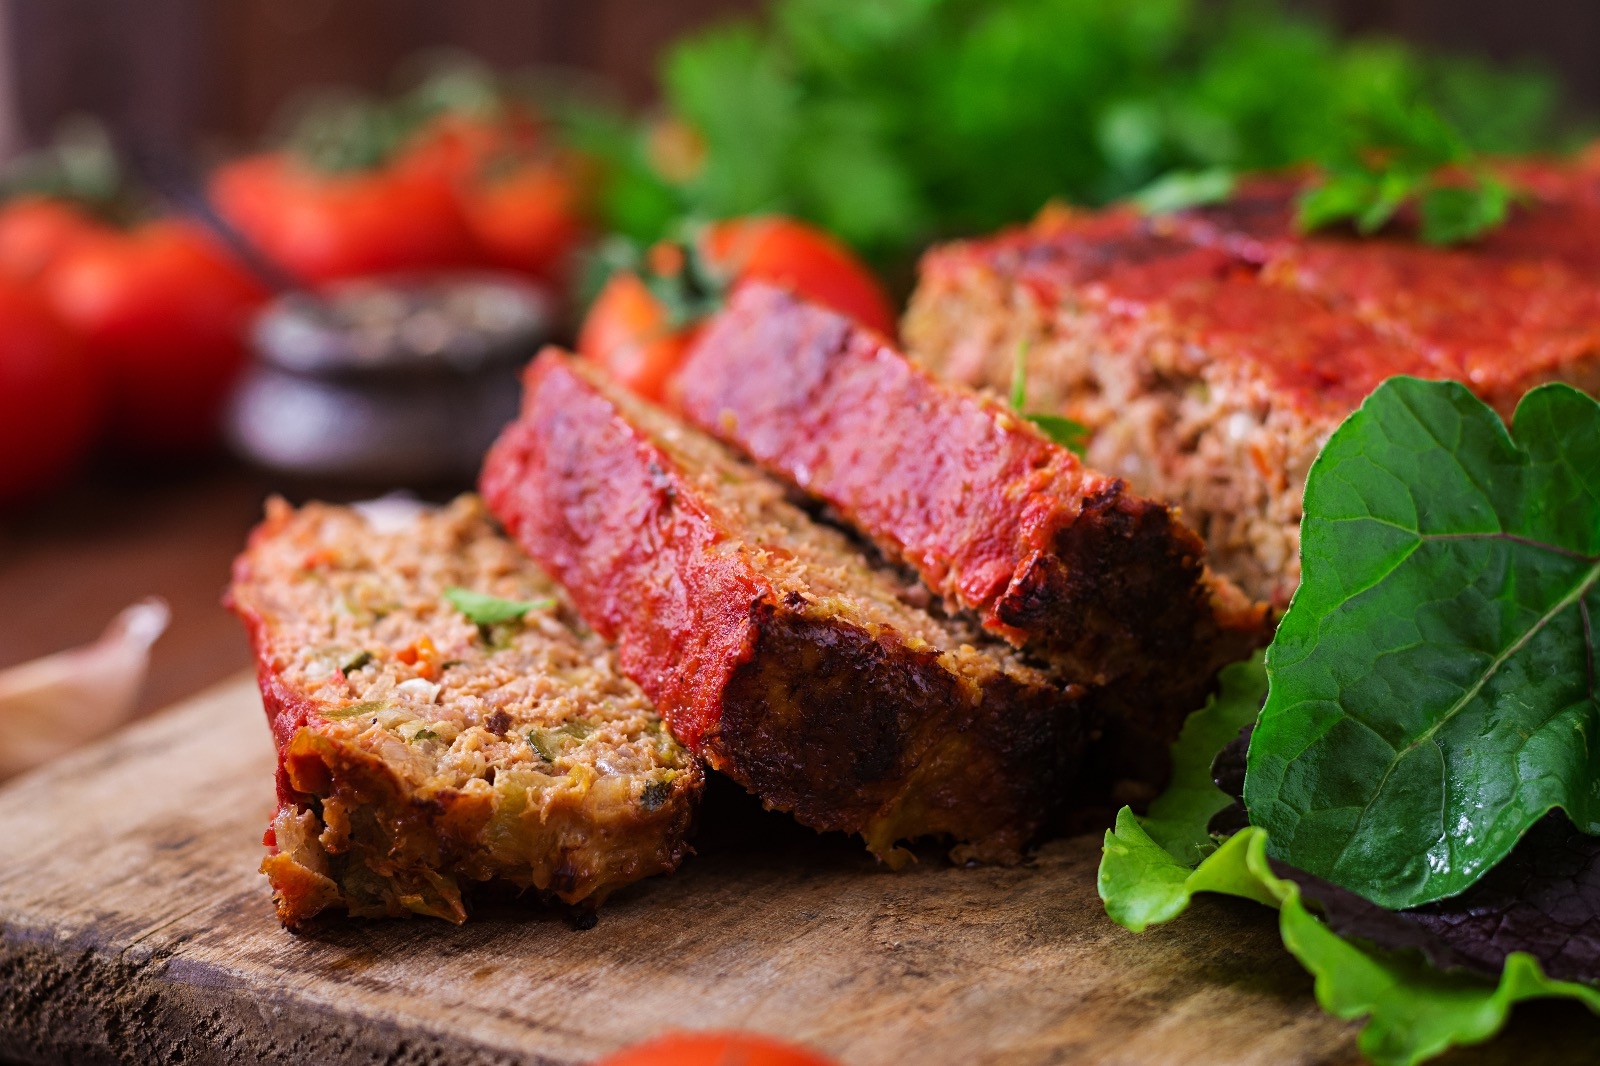 Mouthwatering And Tender Wild Boar + Bison Meatloaf Recipe - Beck & Bulow